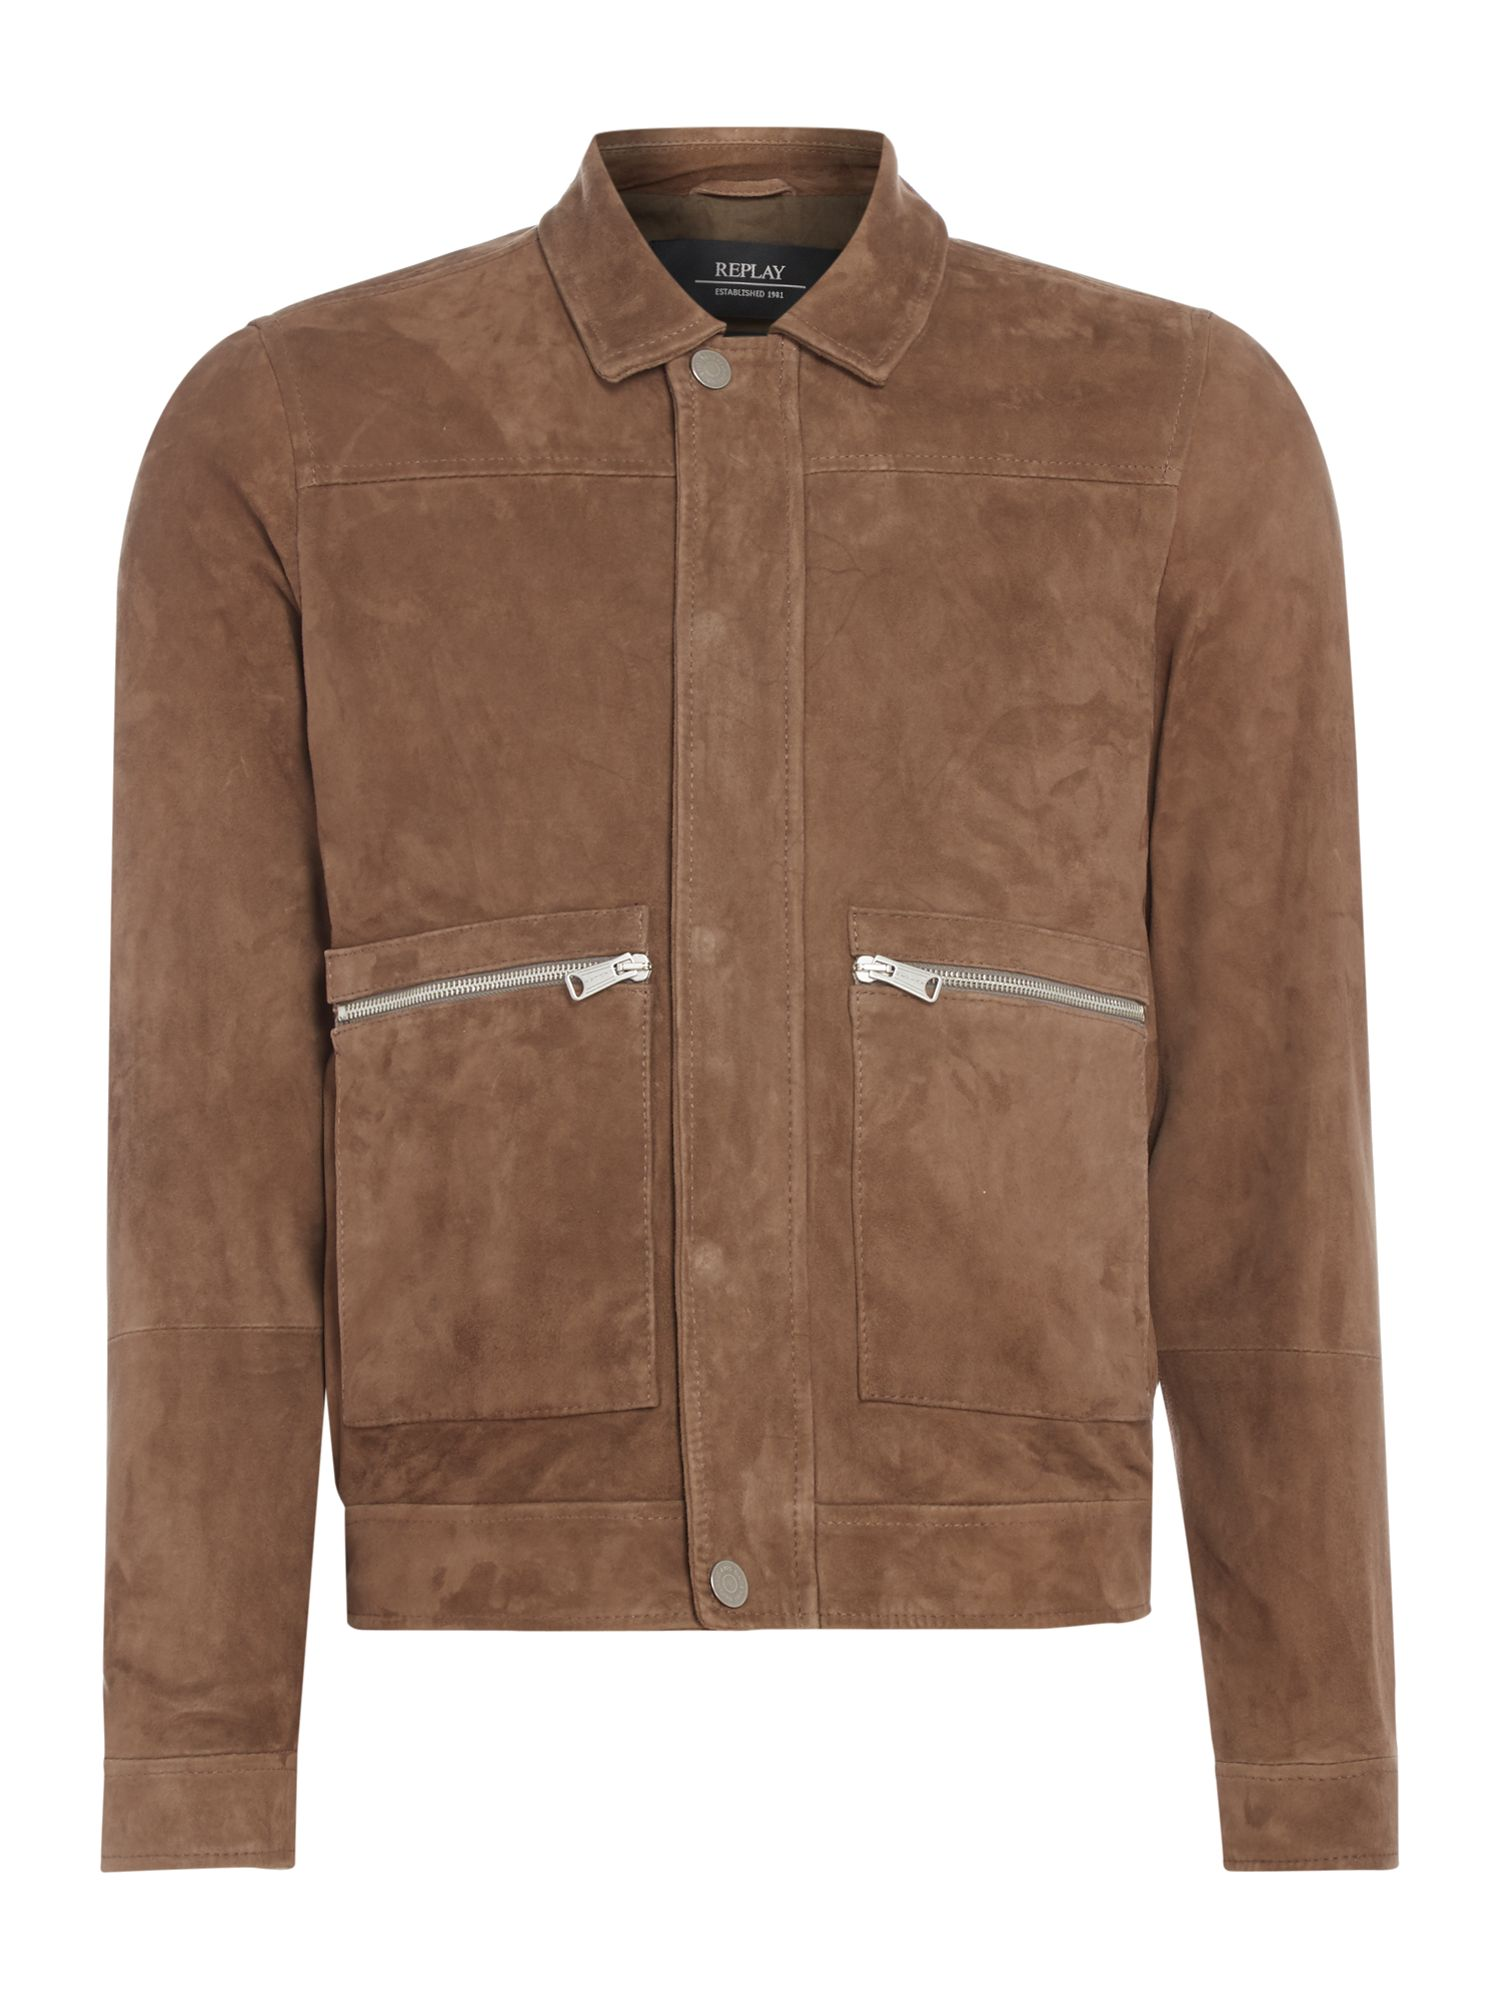 Mens Replay Crinkled leather jacket Brown